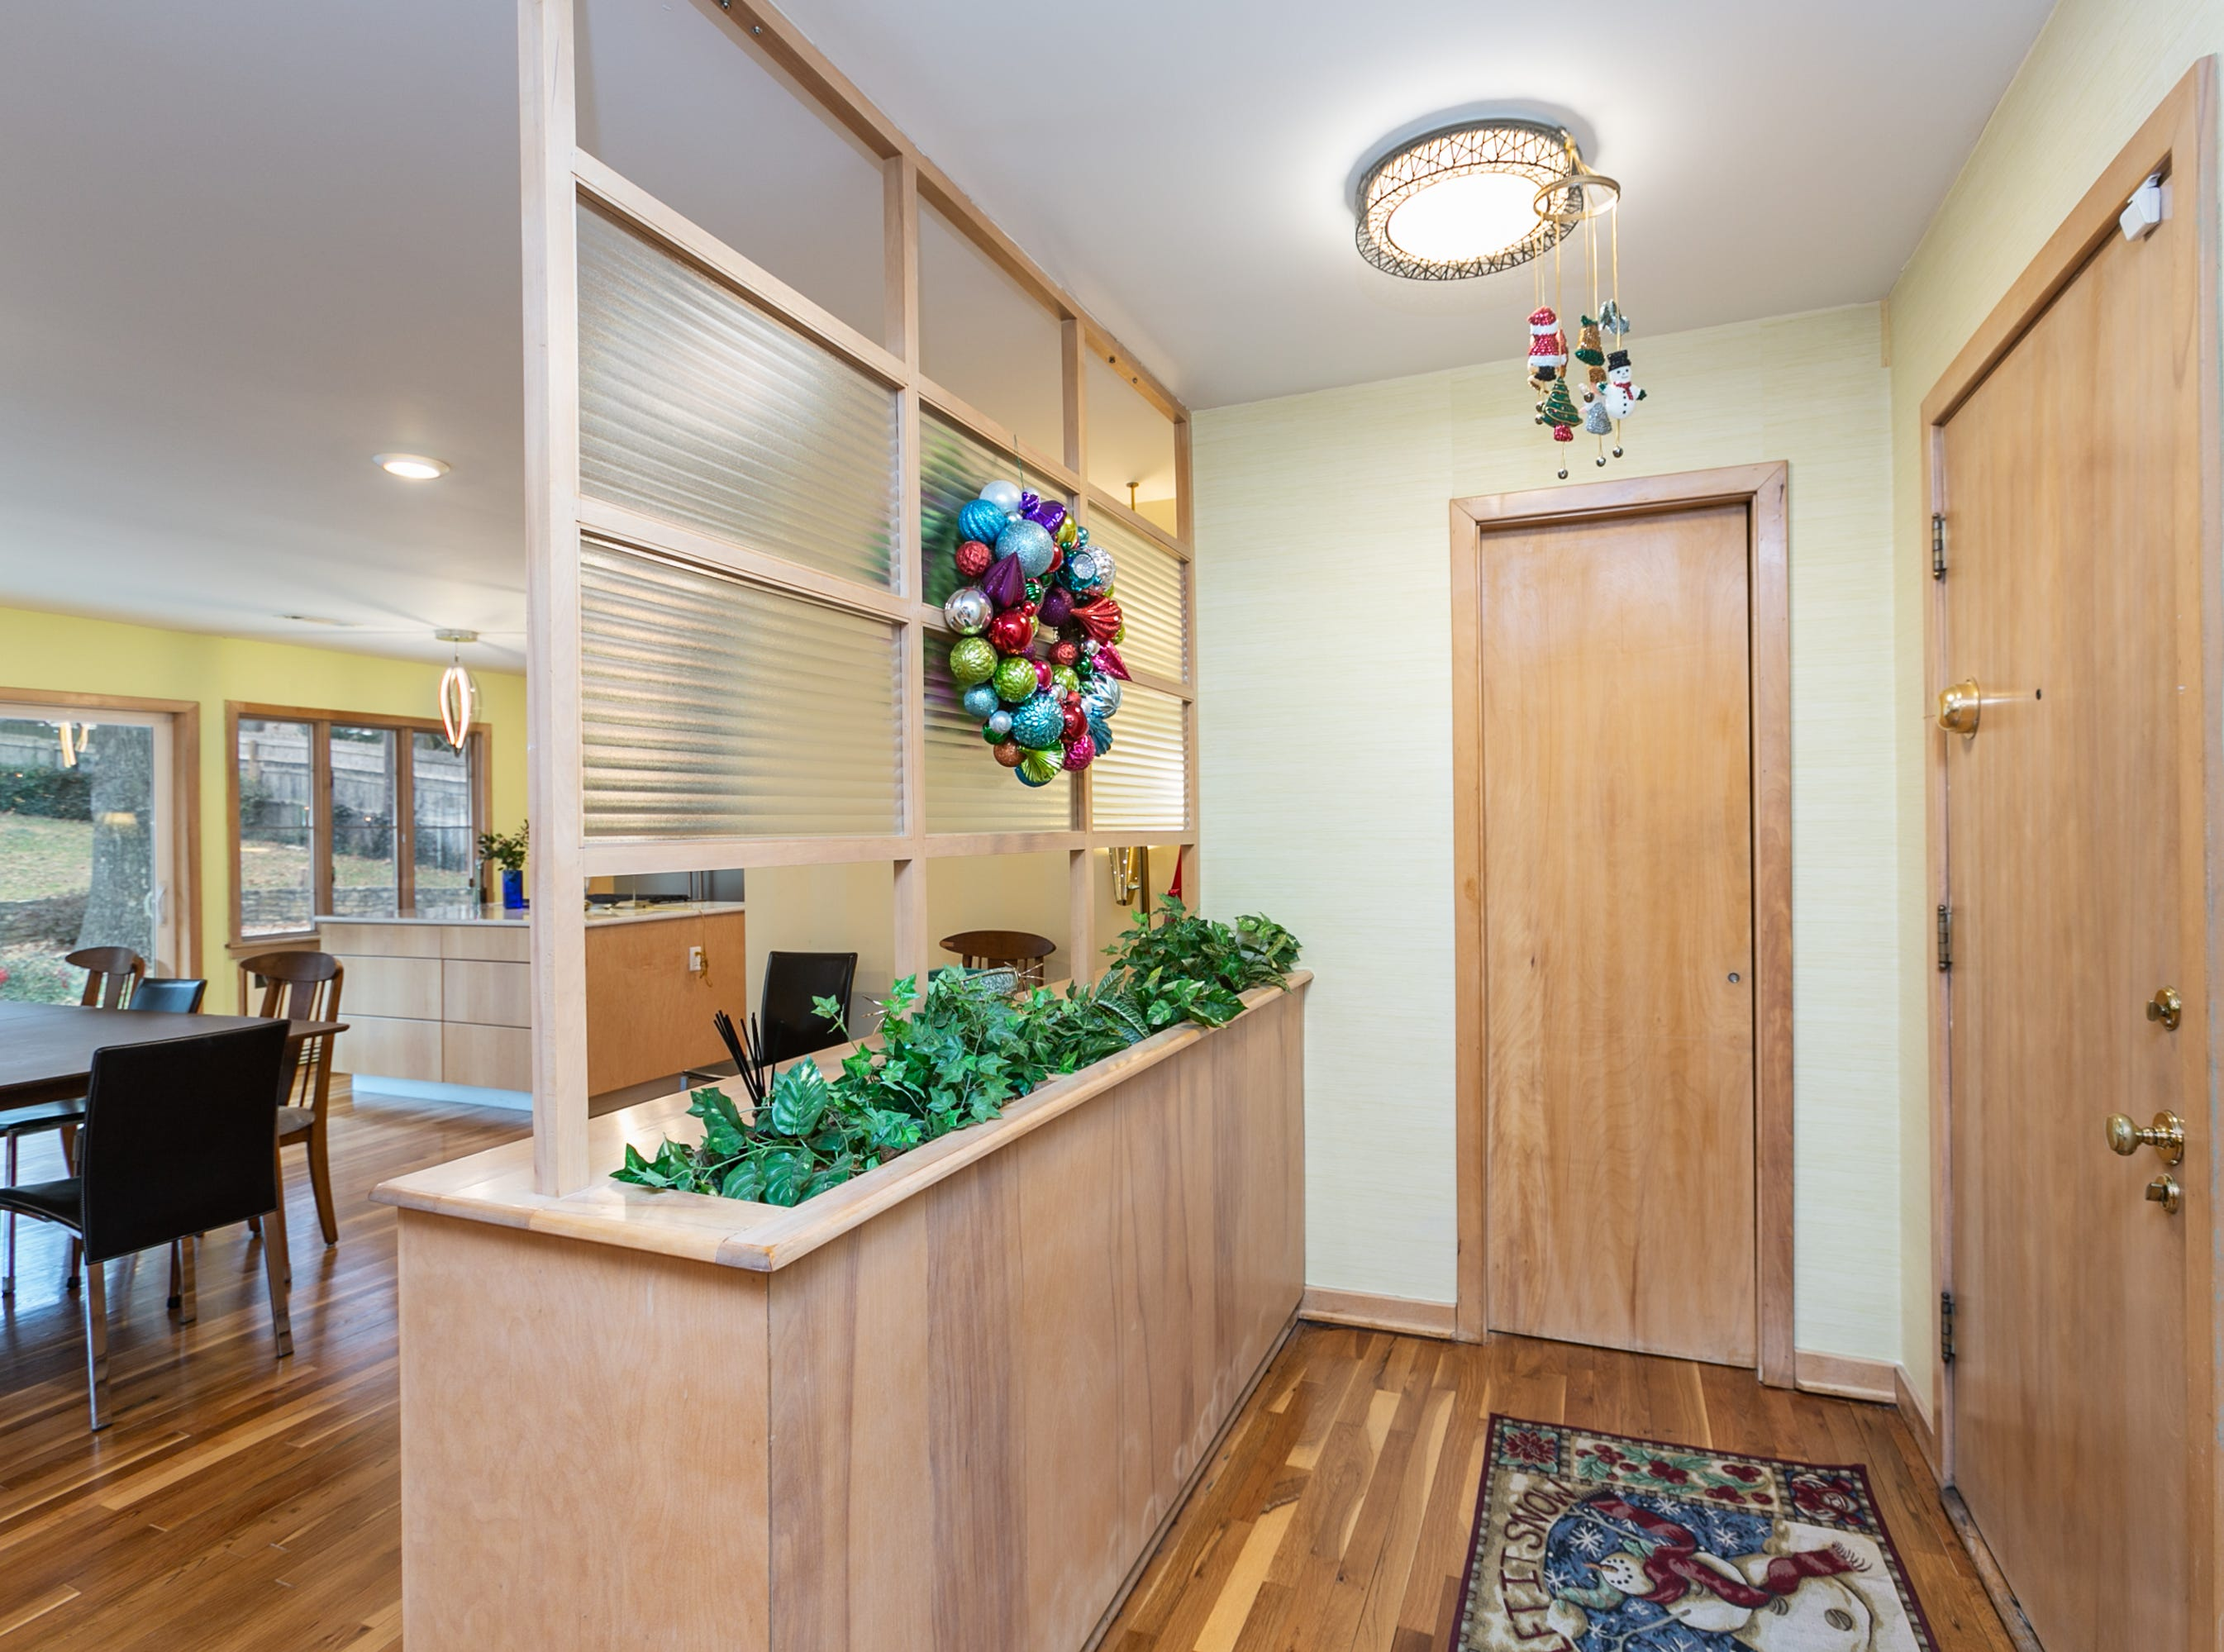 The couple kept as many original features as possible, including this entry divider, the hardwood floors and even the wallpaper.